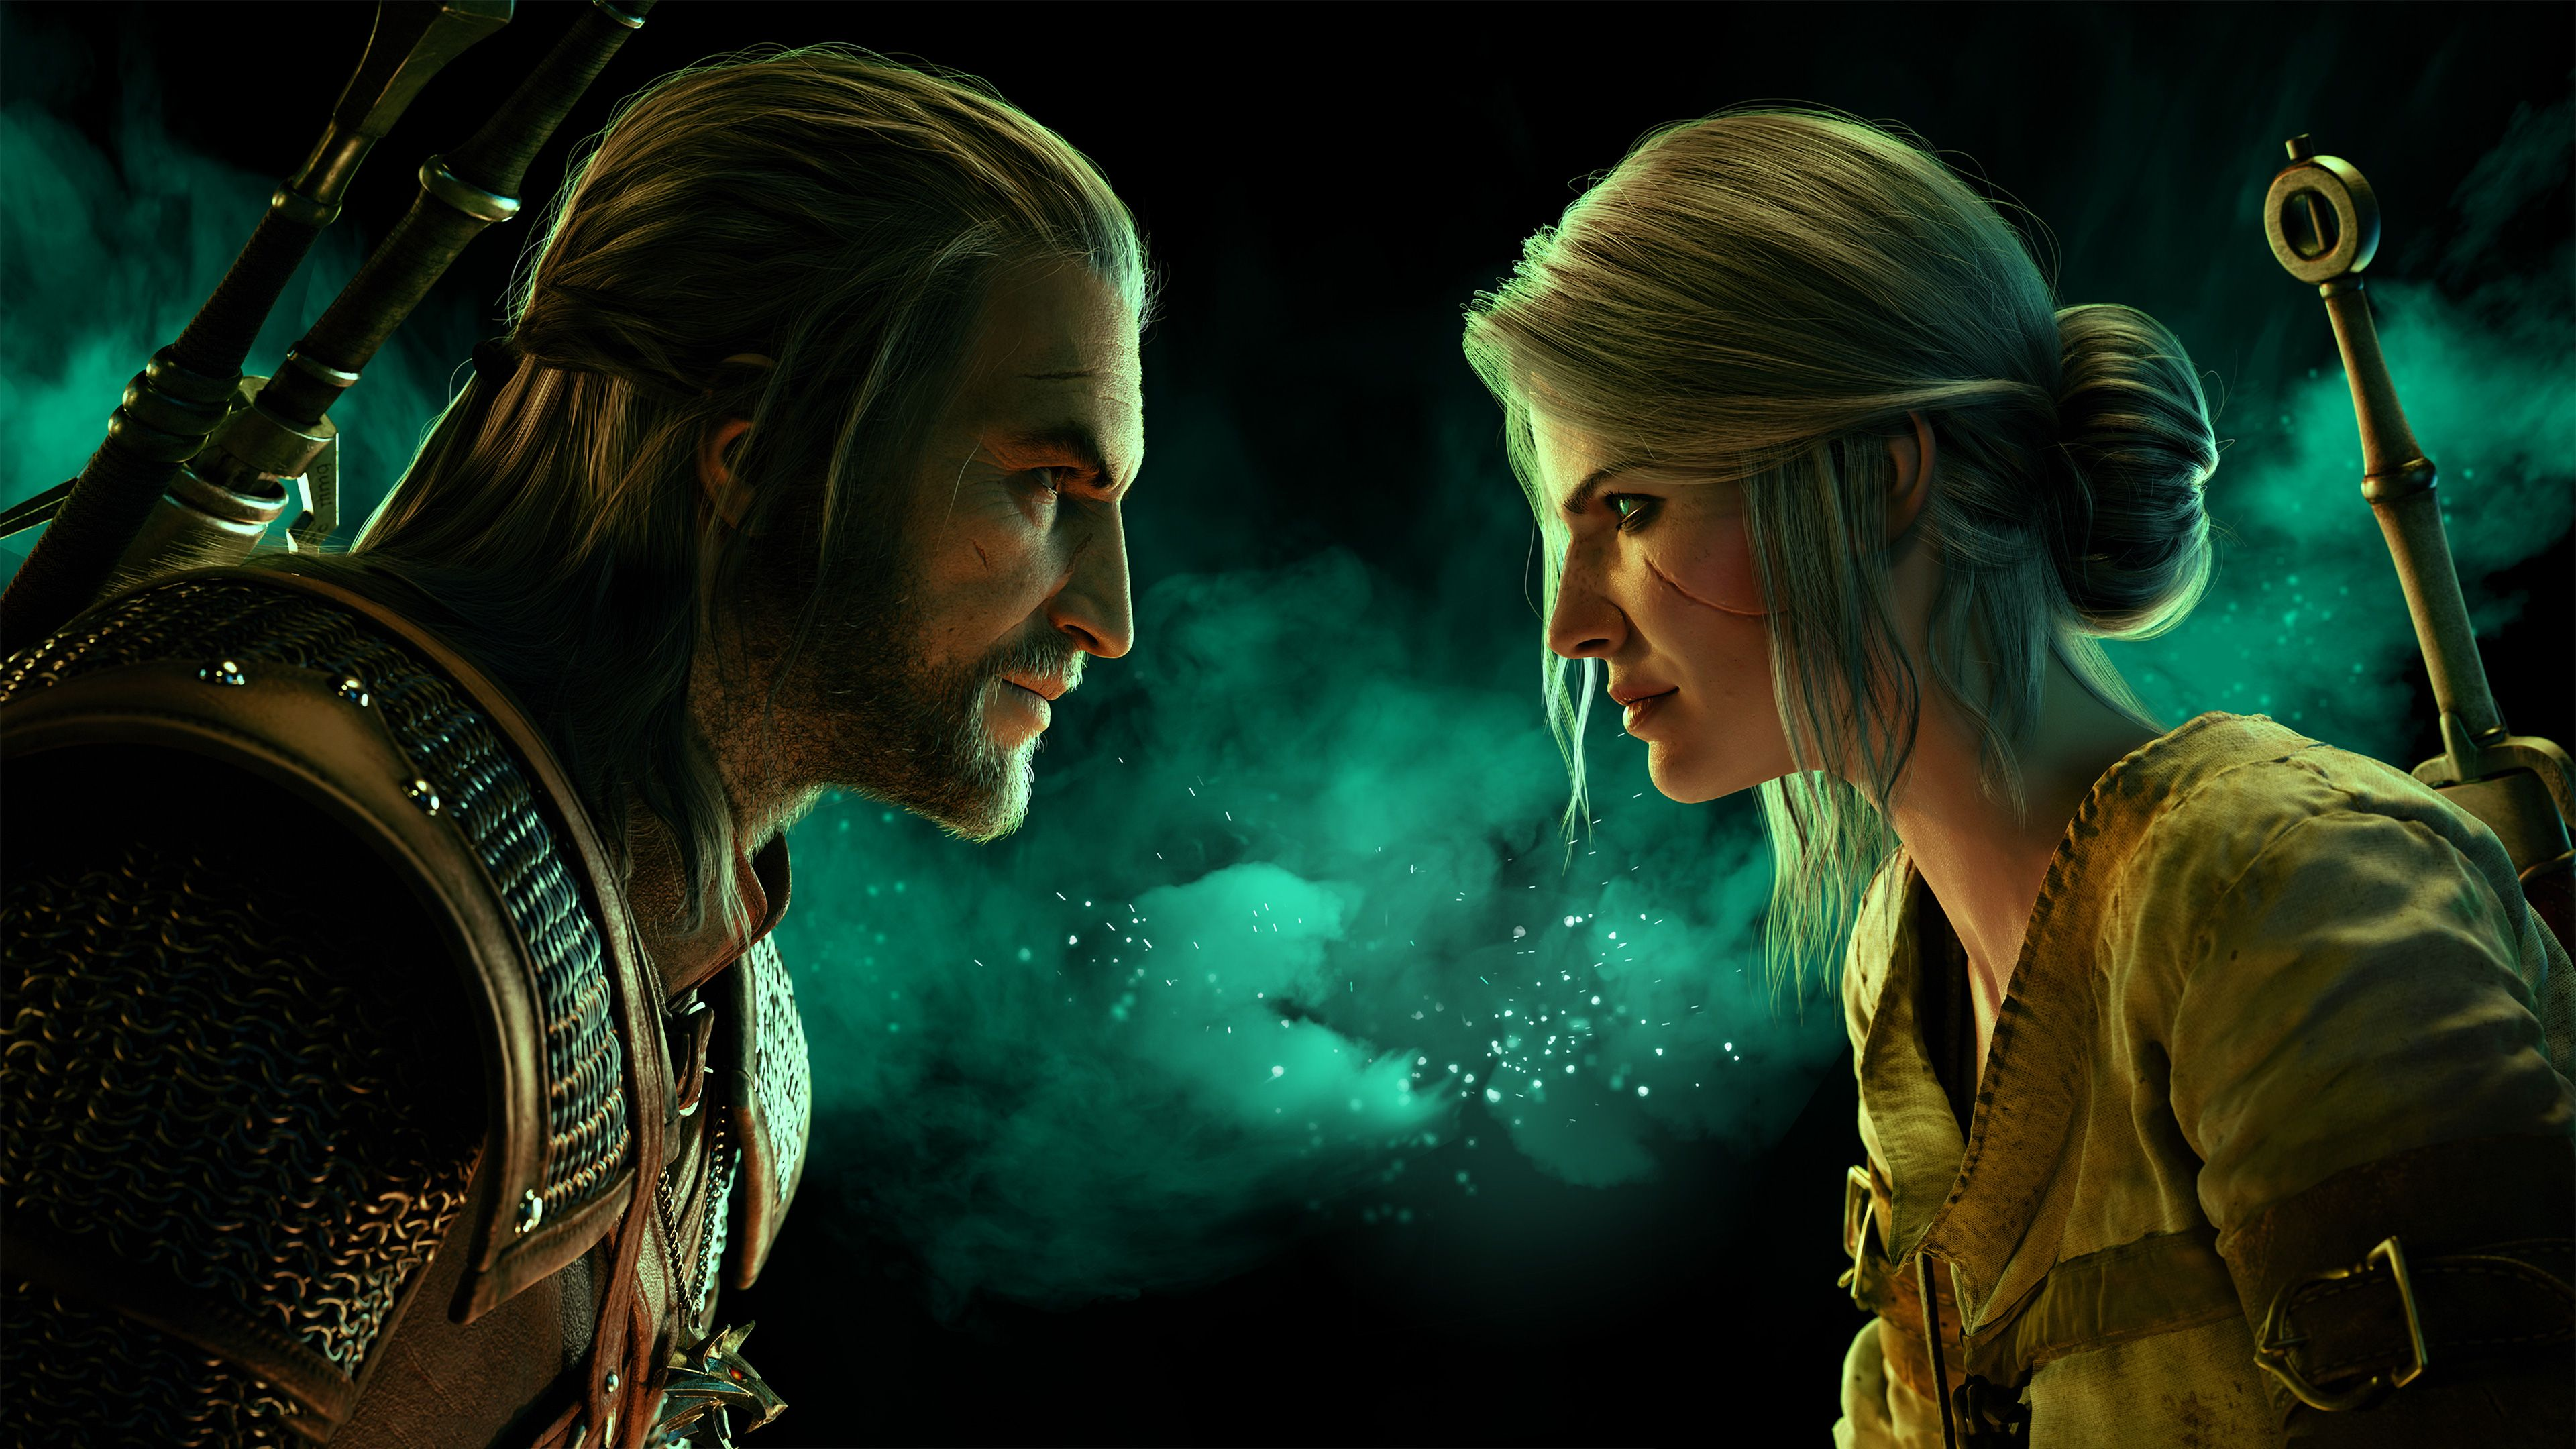 Gwent The Witcher Card Game 4k Wallpaper Https Hdwallpapersmafia Com Gwent The Witcher Card Game 4k Wallpaper 2 Gwent The Witcher The Witcher 3 Wild Hunt